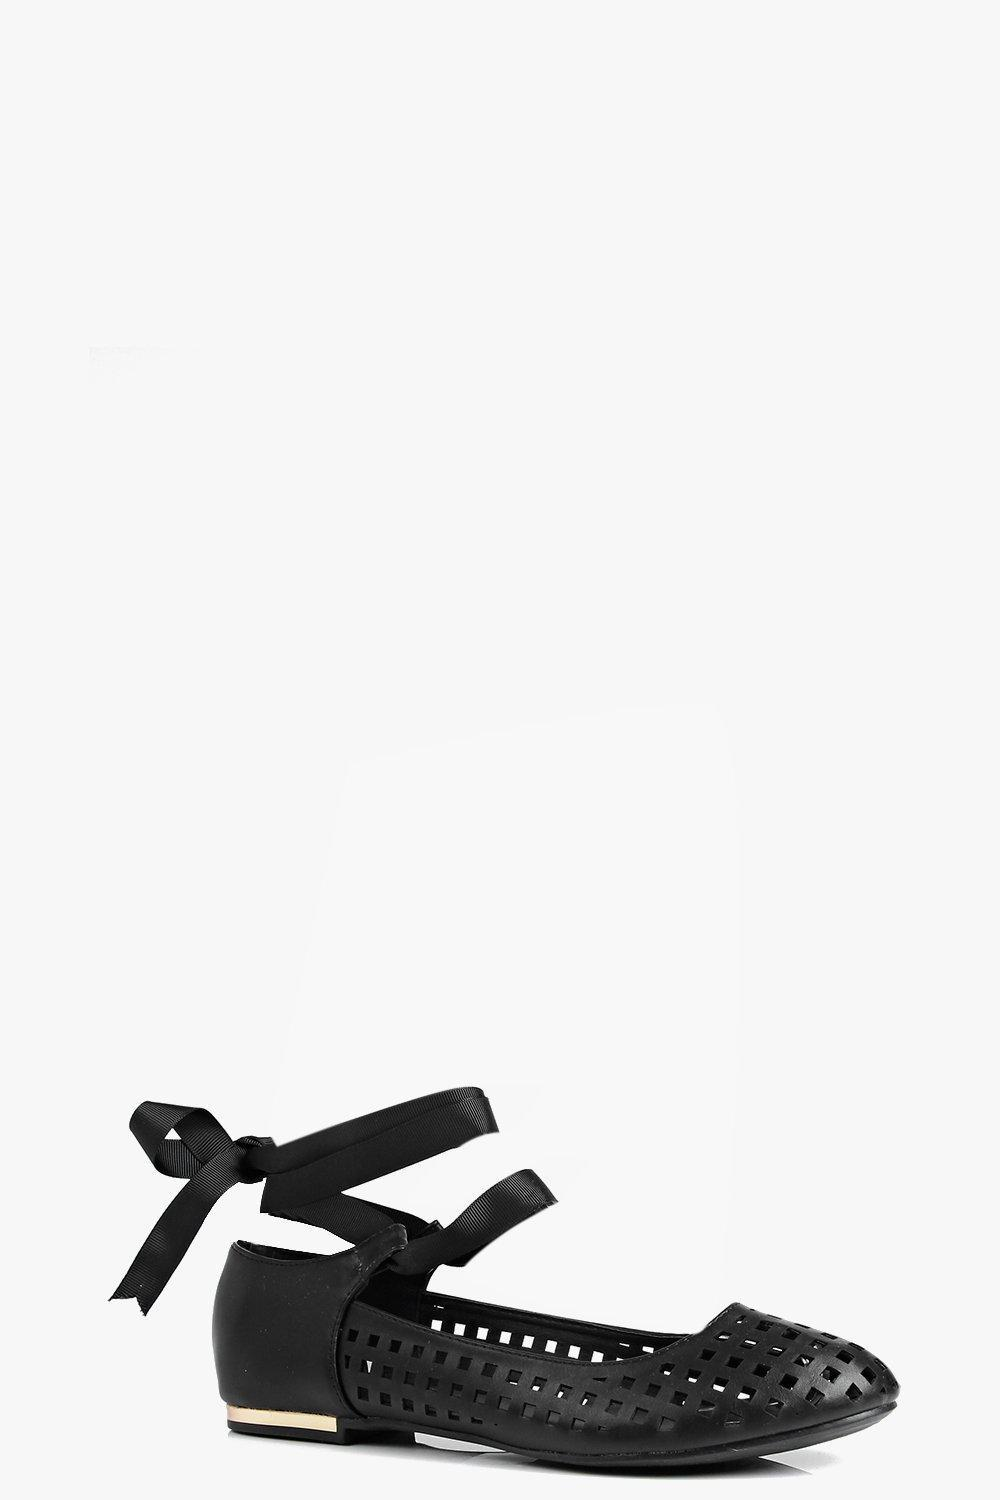 Lazer Cut Ribbon Tie Ballet Black - predominant colour: black; occasions: casual; material: faux leather; heel height: flat; embellishment: ribbon; ankle detail: ankle tie; toe: round toe; style: ballerinas / pumps; finish: plain; pattern: plain; season: s/s 2016; wardrobe: basic